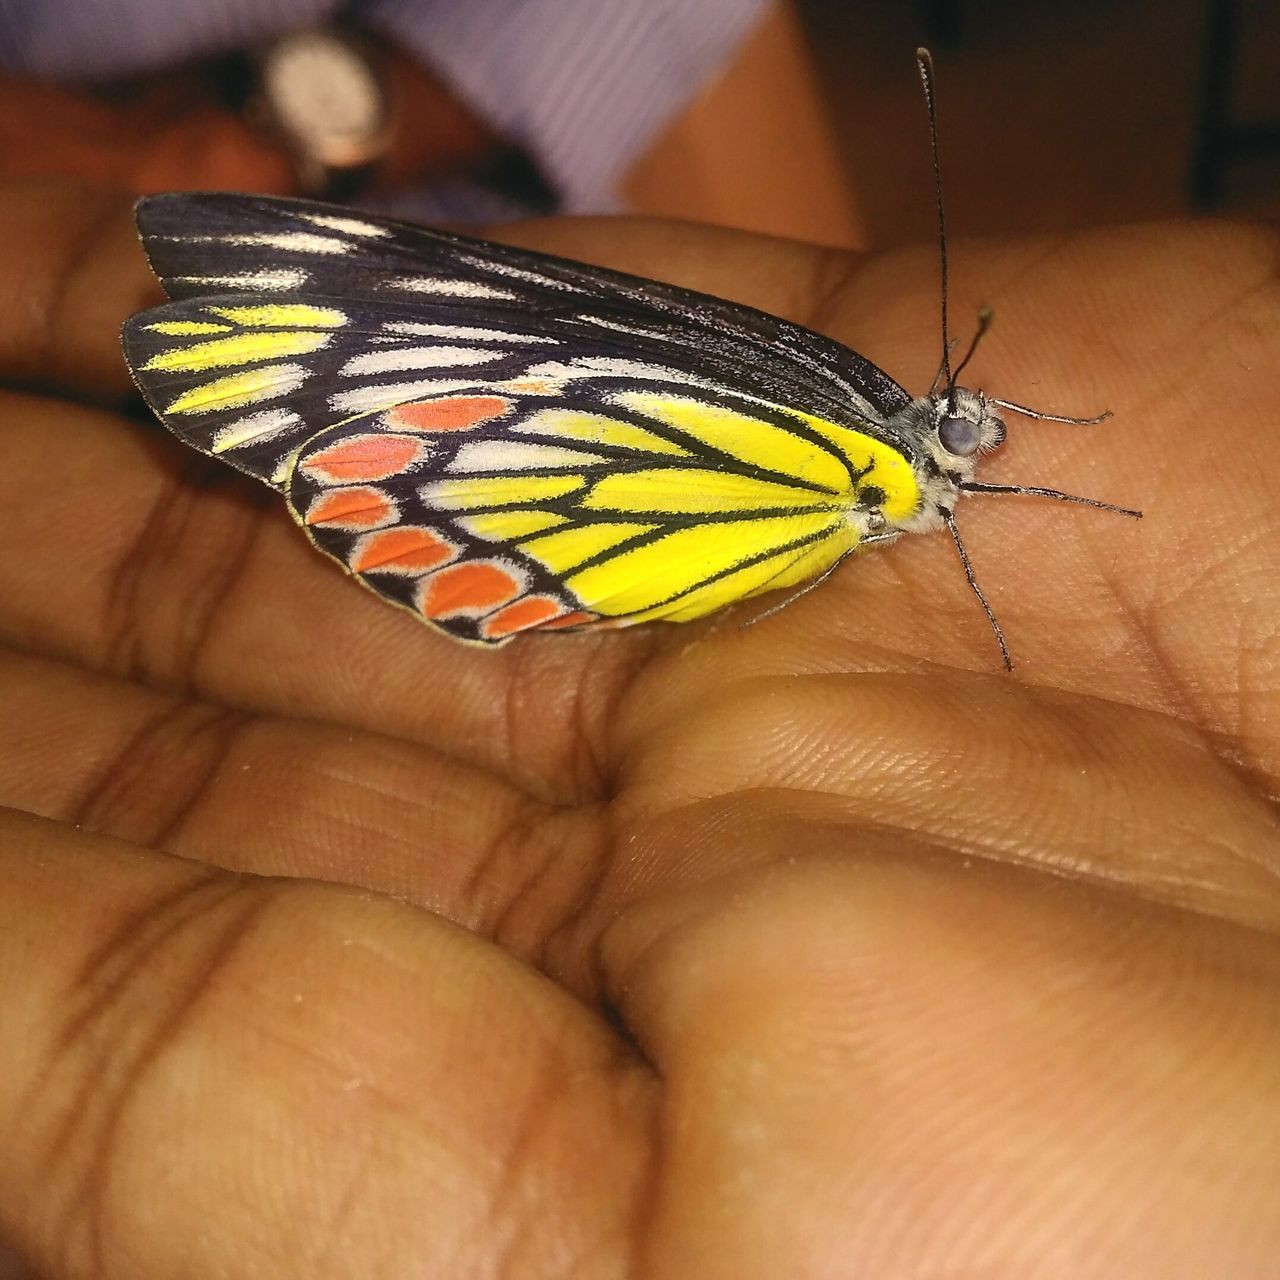 human body part, one animal, human hand, insect, human finger, animal themes, butterfly - insect, one person, animals in the wild, close-up, real people, holding, animal wildlife, outdoors, day, fingernail, nature, people, adult